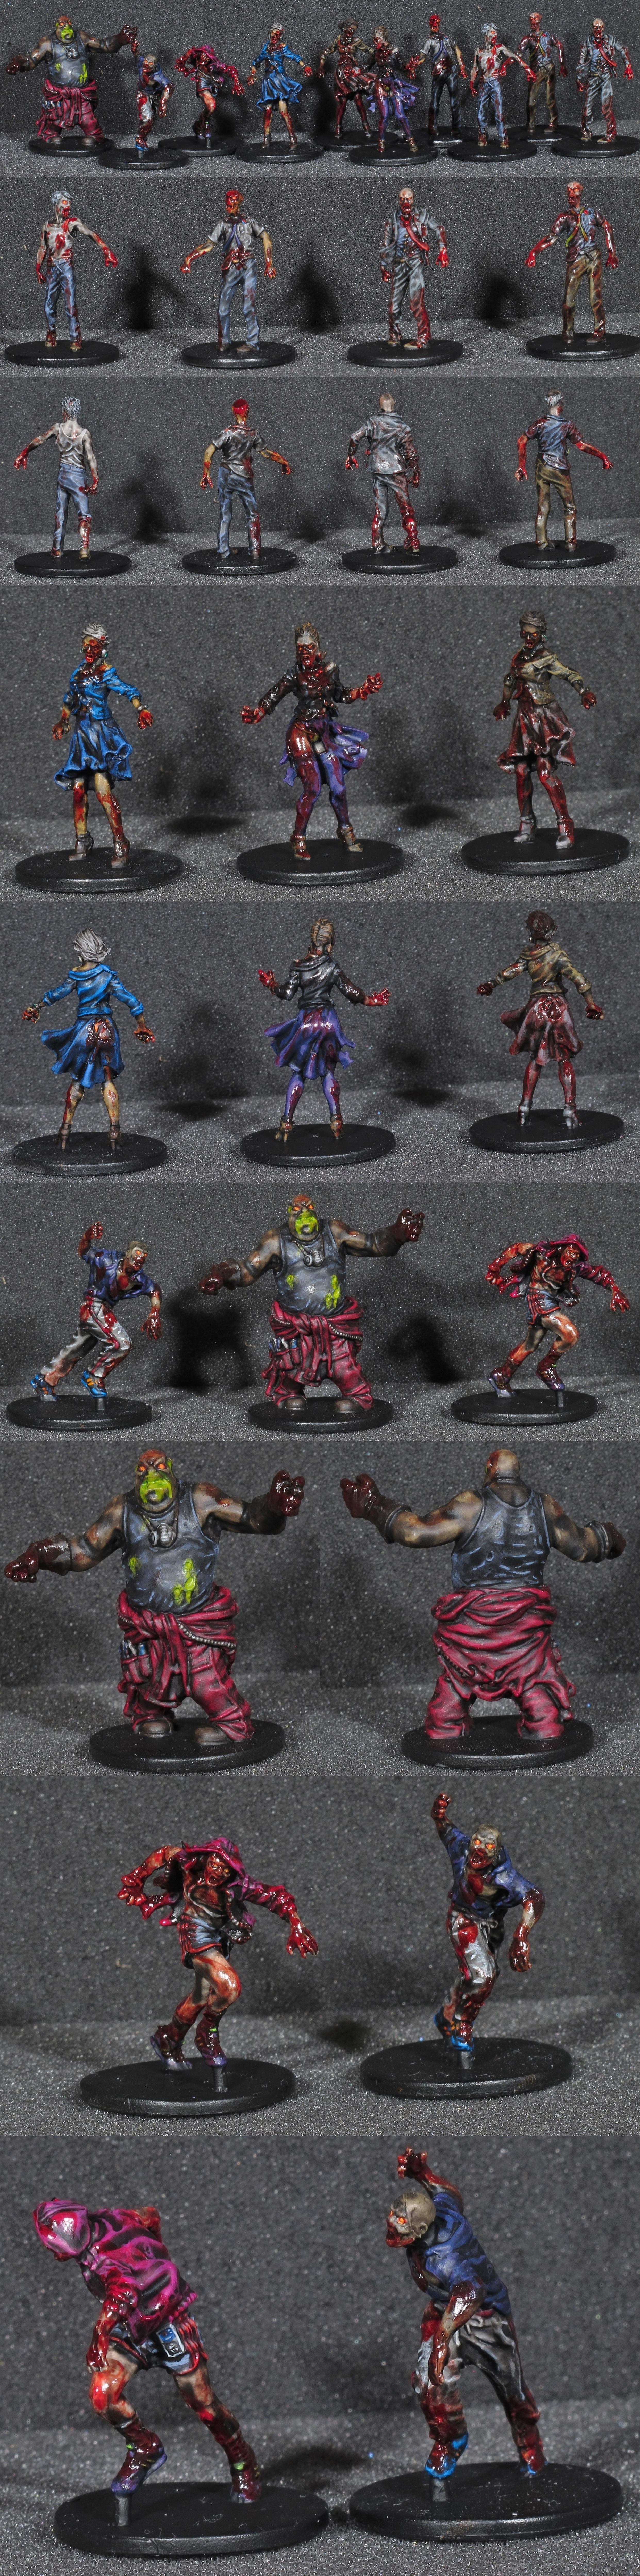 Boardgame, Fatty, Gore, Runners, Undead, Walkers, Zombicide, Zombie